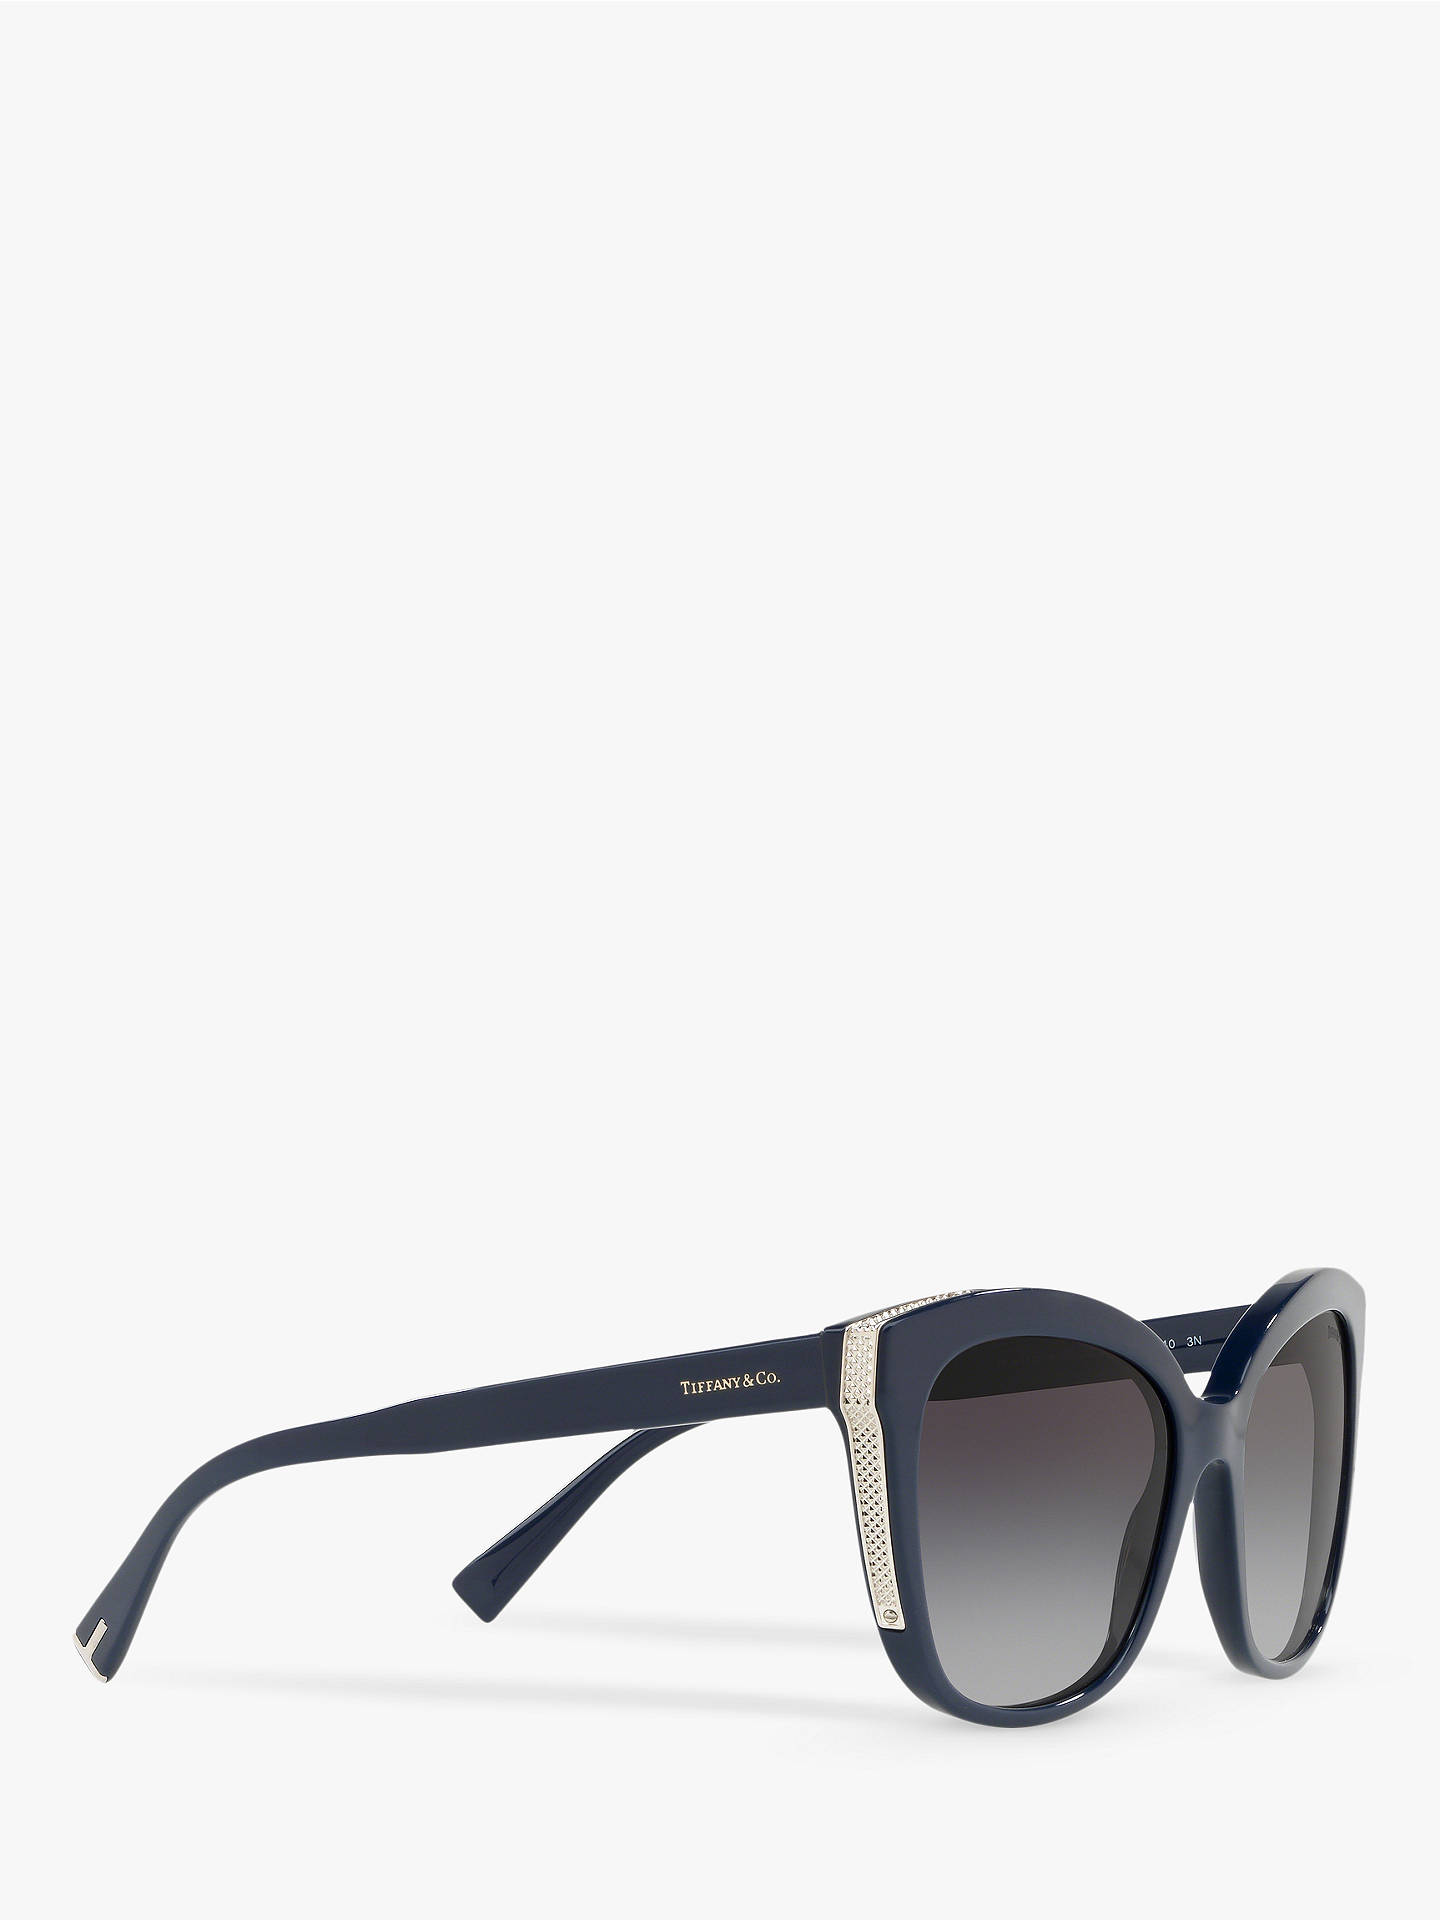 Buy Tiffany & Co TF4150 Women's Embellished Square Sunglasses, Blue/Grey Gradient Online at johnlewis.com